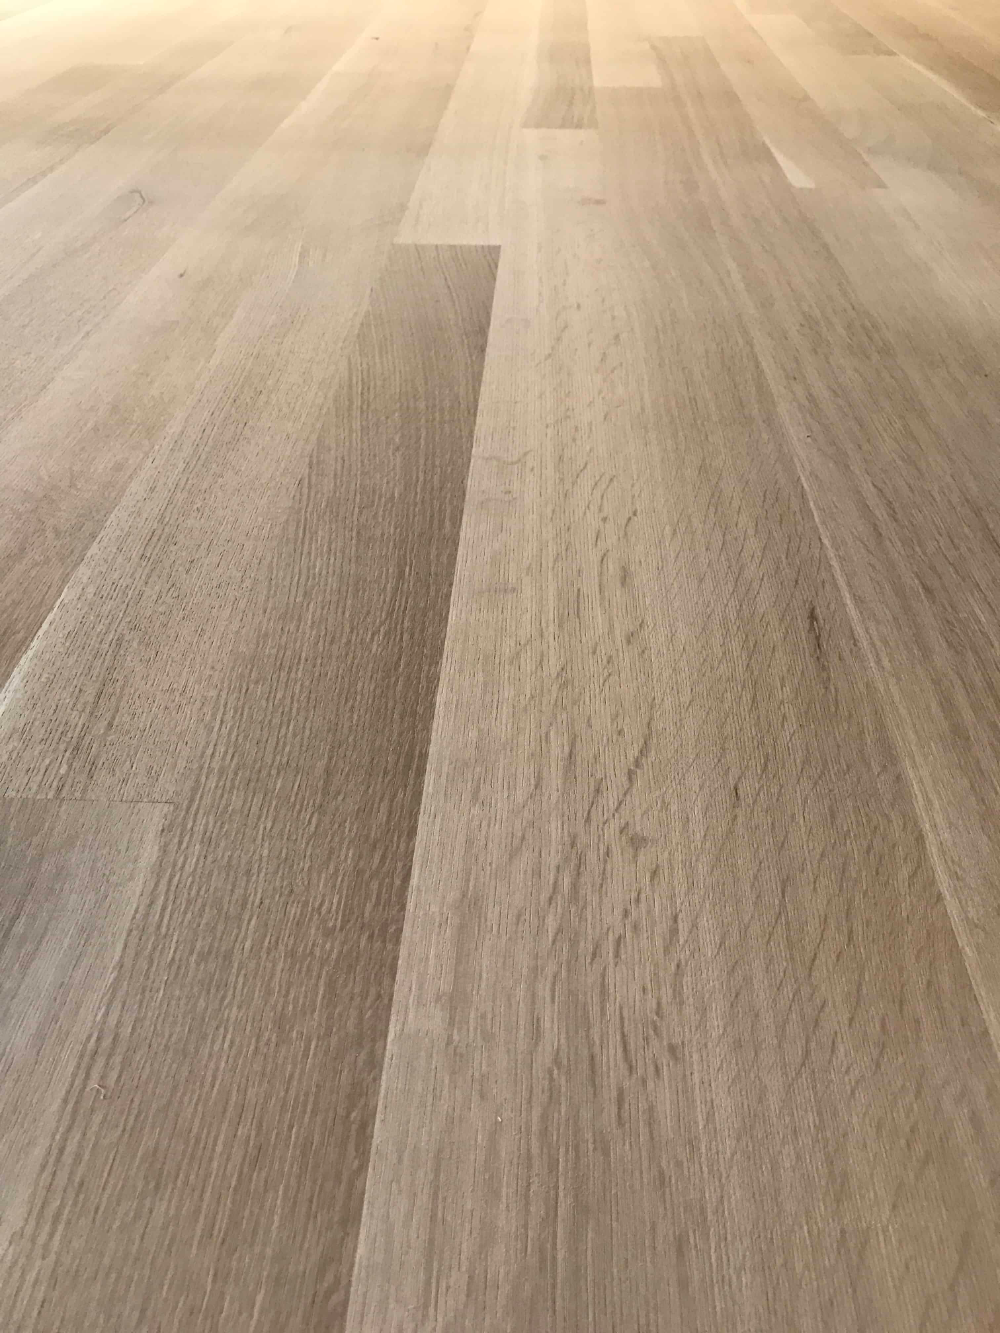 Best Finish For The Most Natural Looking White Oak Floors White Oak Floors Wood Floor Stain Colors White Oak